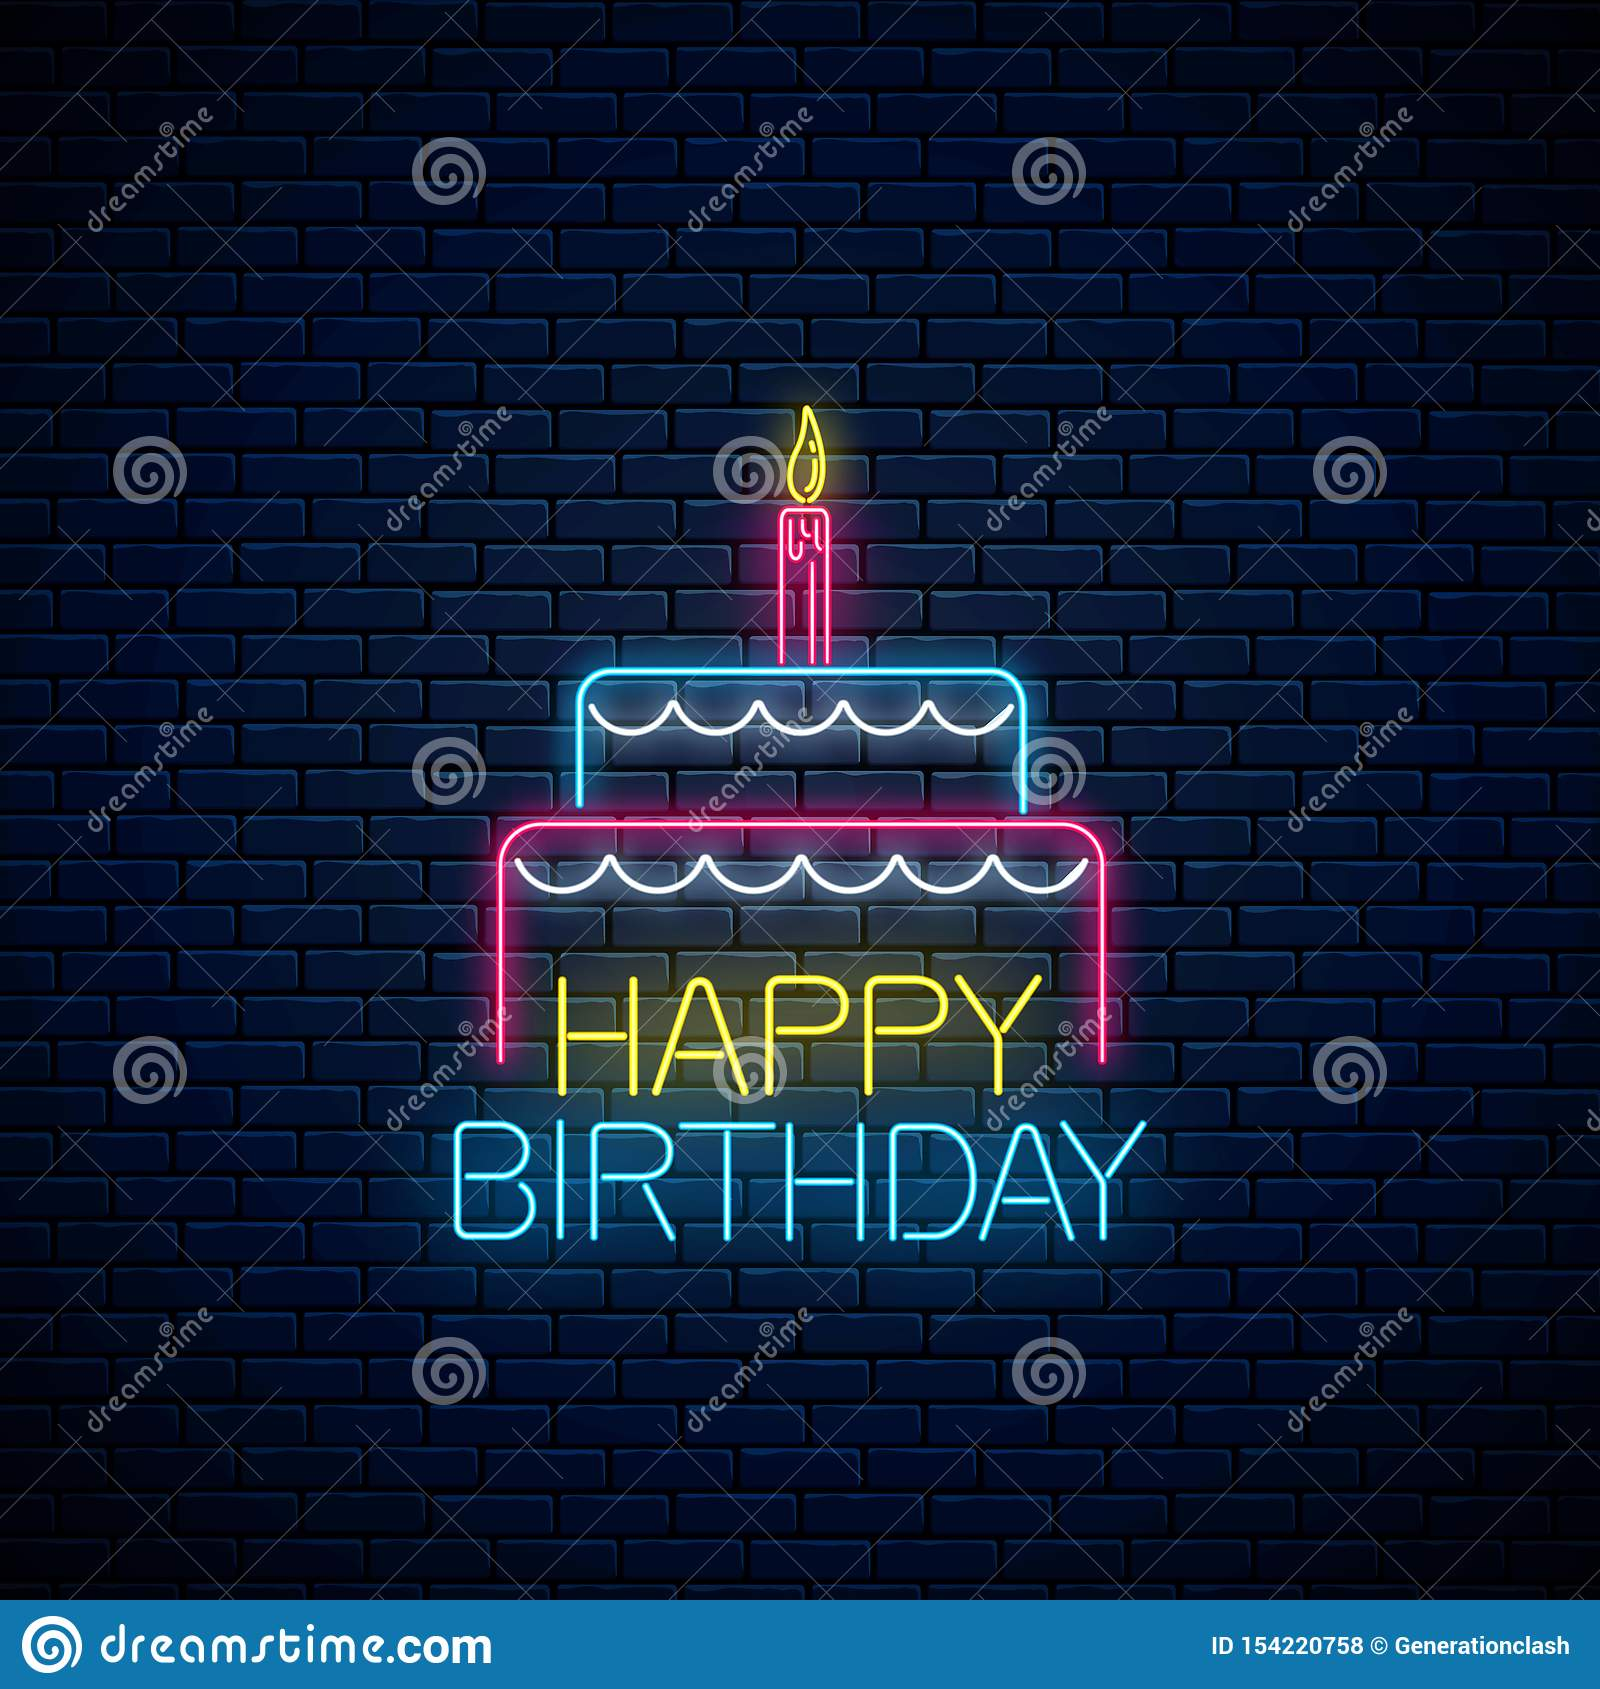 Pleasing Happy Birthday Glowing Neon Sign With Cake And A Candle Birthday Birthday Cards Printable Giouspongecafe Filternl